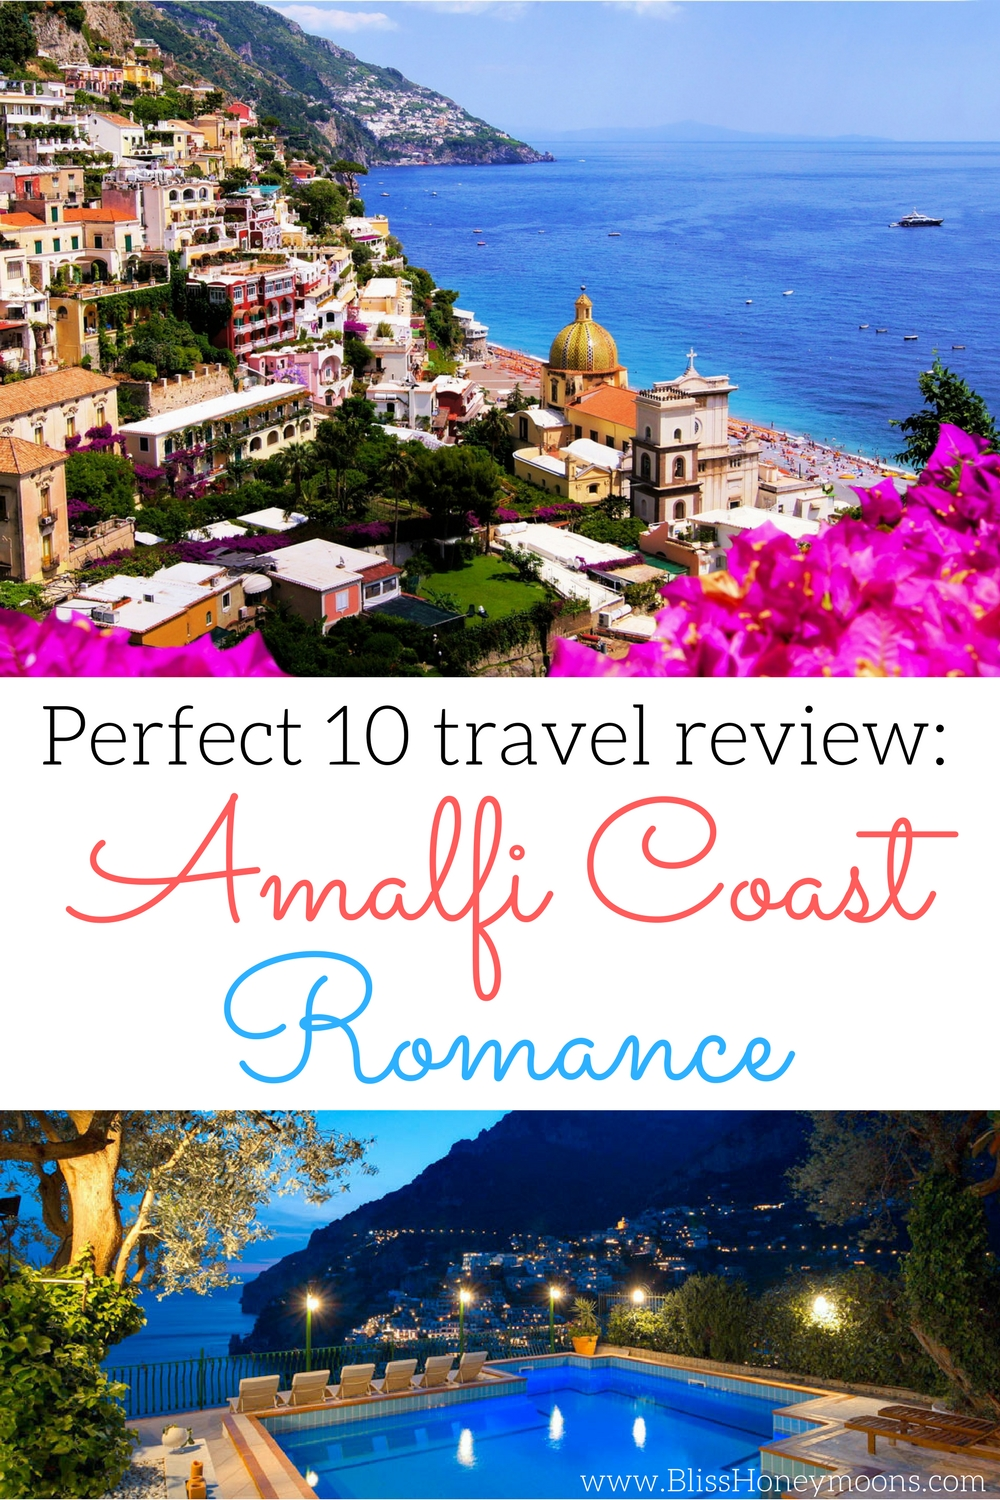 Amalfi coast tour review, best romantic travel ideas, unique travel destinations, best Amalfi coast tour, top Amalfi coast travel, best honeymoon travel agent, Bliss Honeymoons review